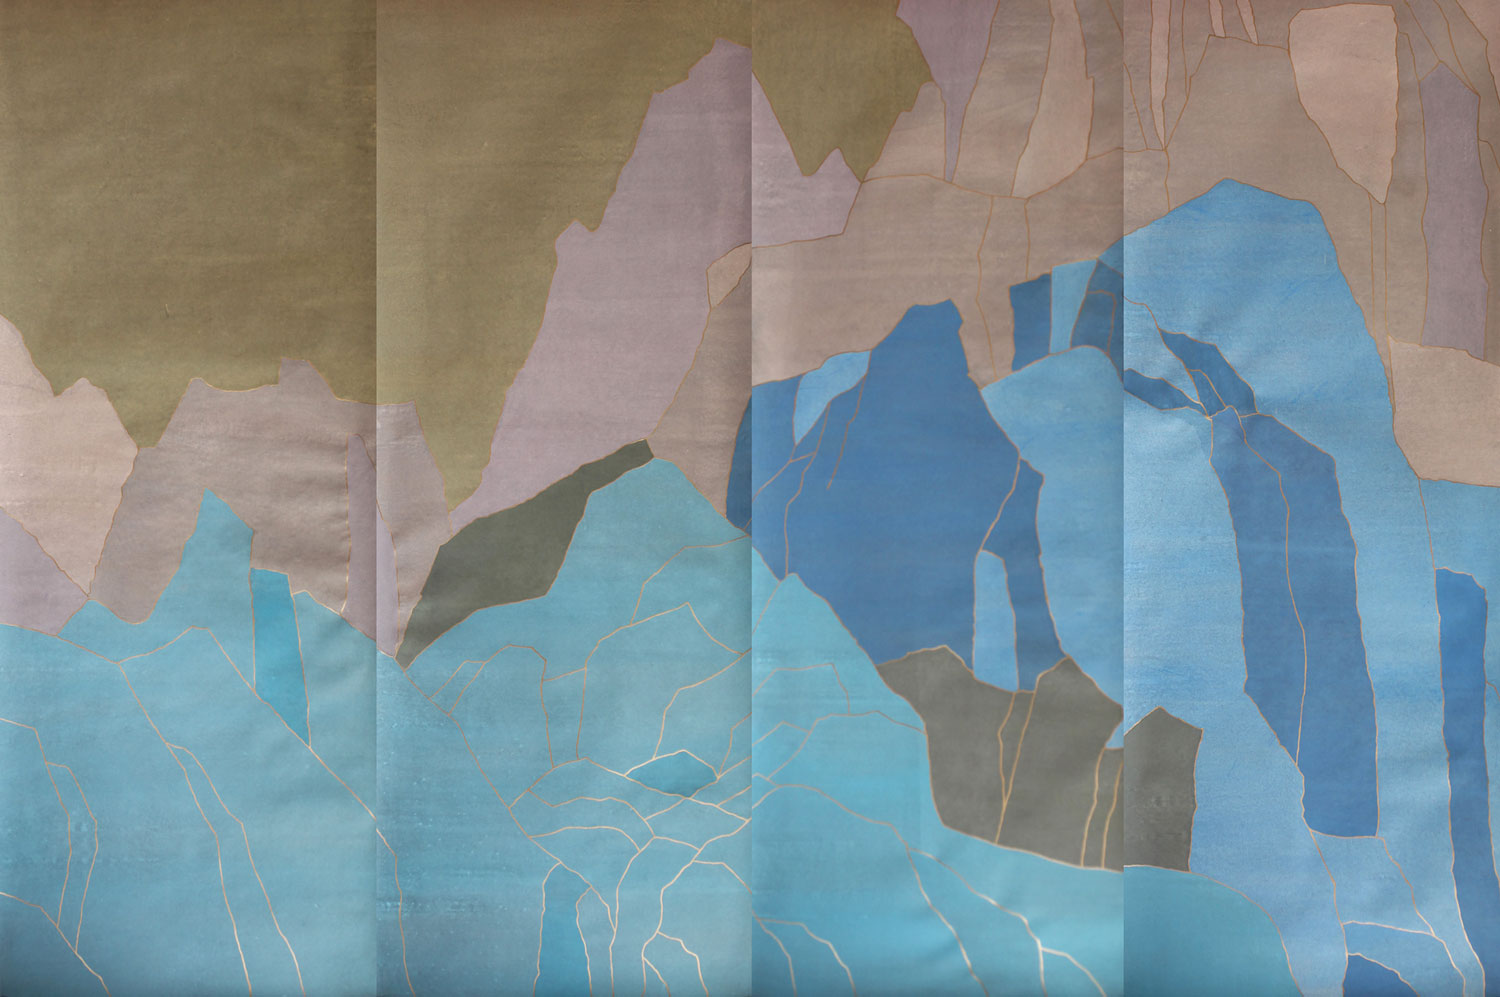 Wallpaper by Fromental at Maison & Objet 2015 | Yellowtrace